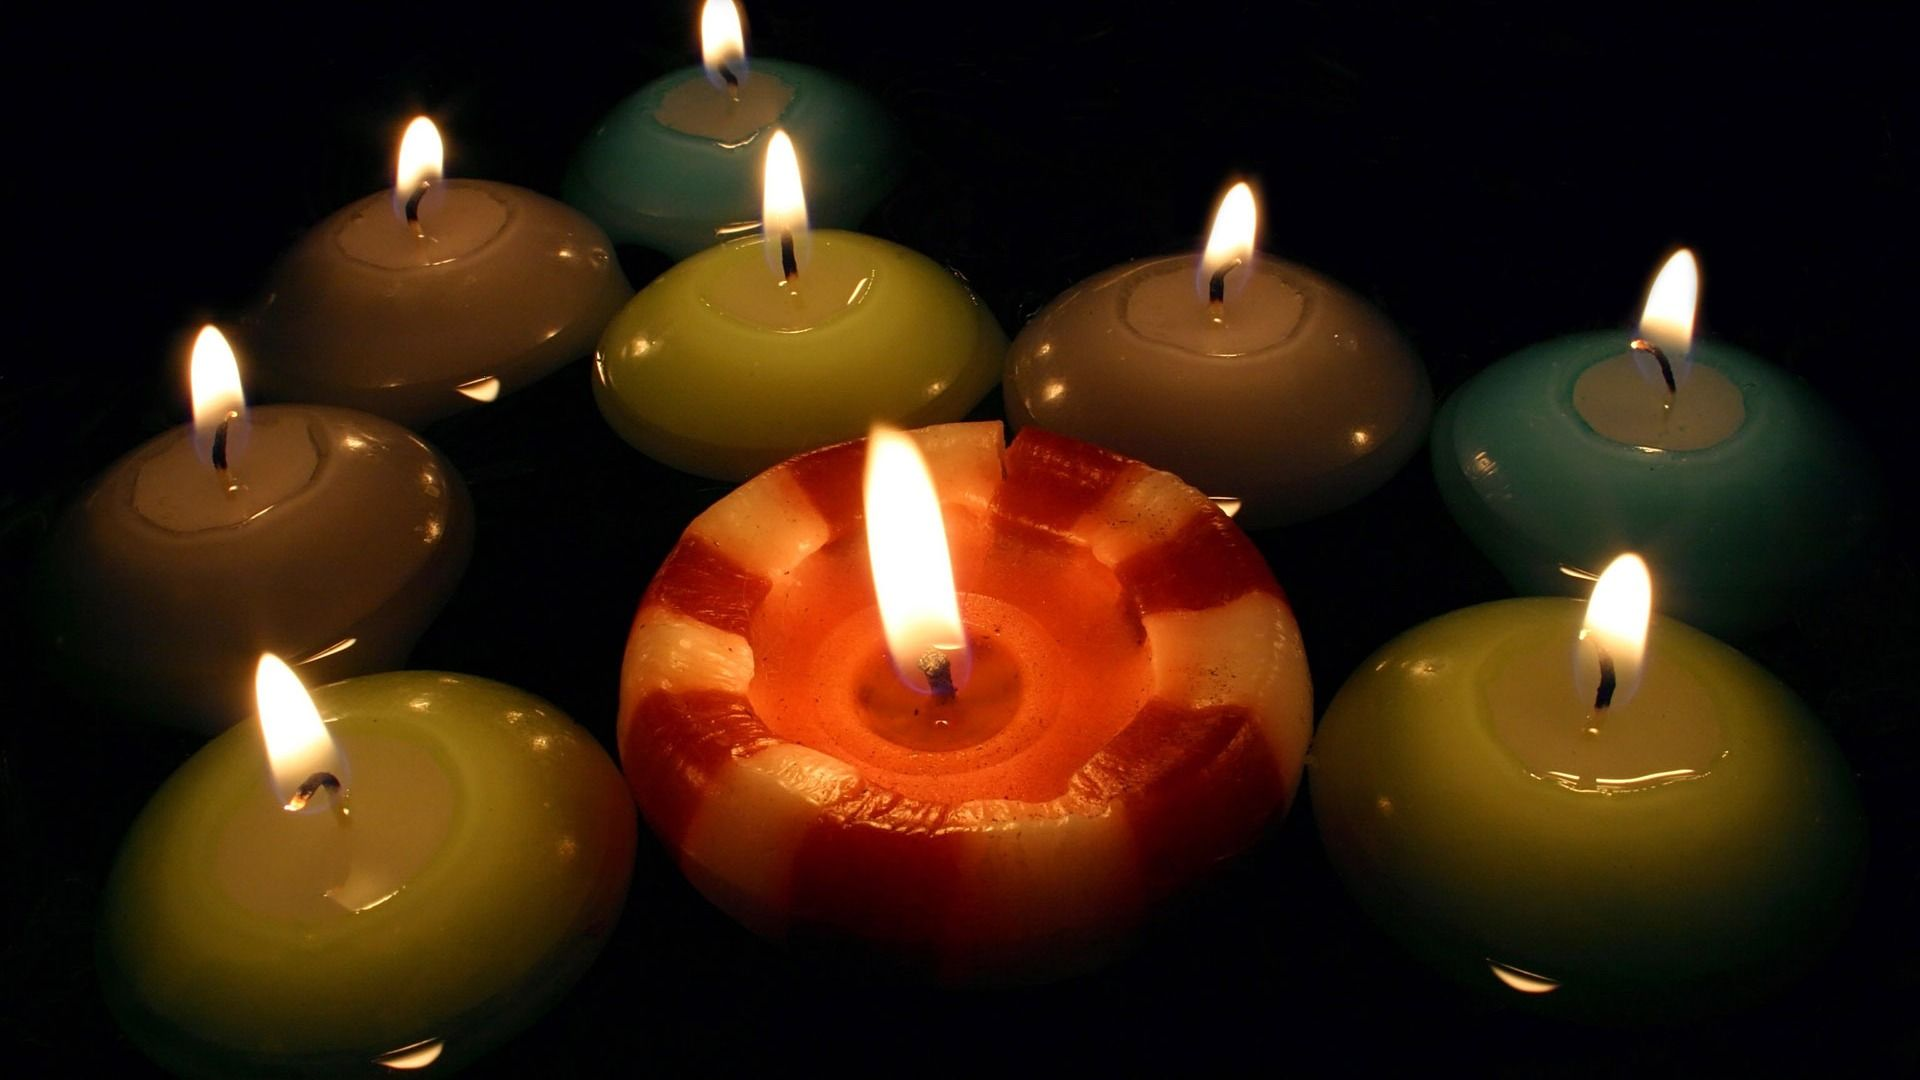 Candle good wallpaper hd